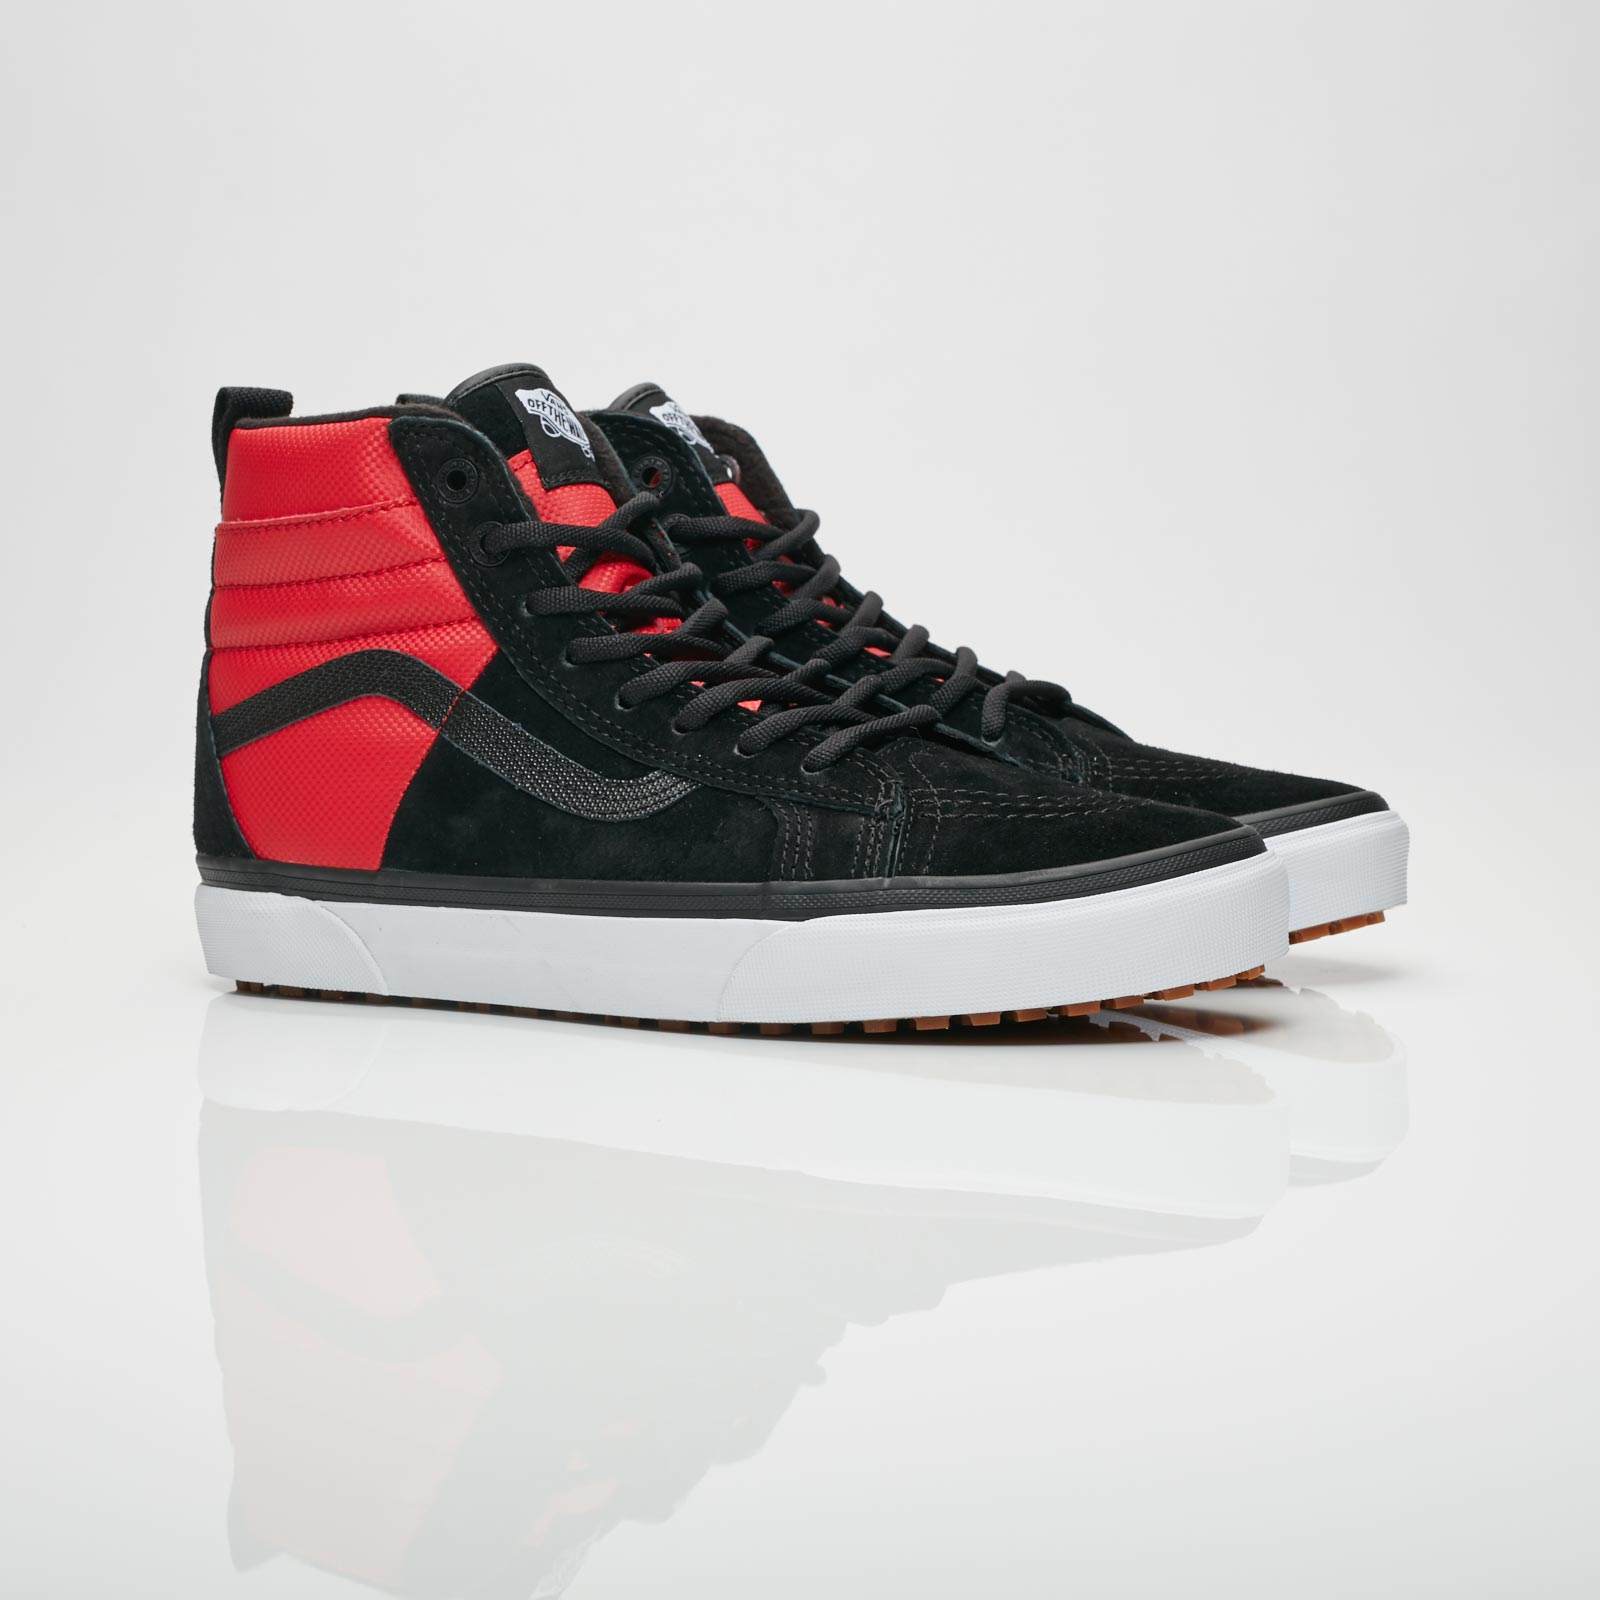 f26ada32db95a9 Vans Sk8-Hi 46 MTE DX x The North Face - Vn0a3dq5qws ...